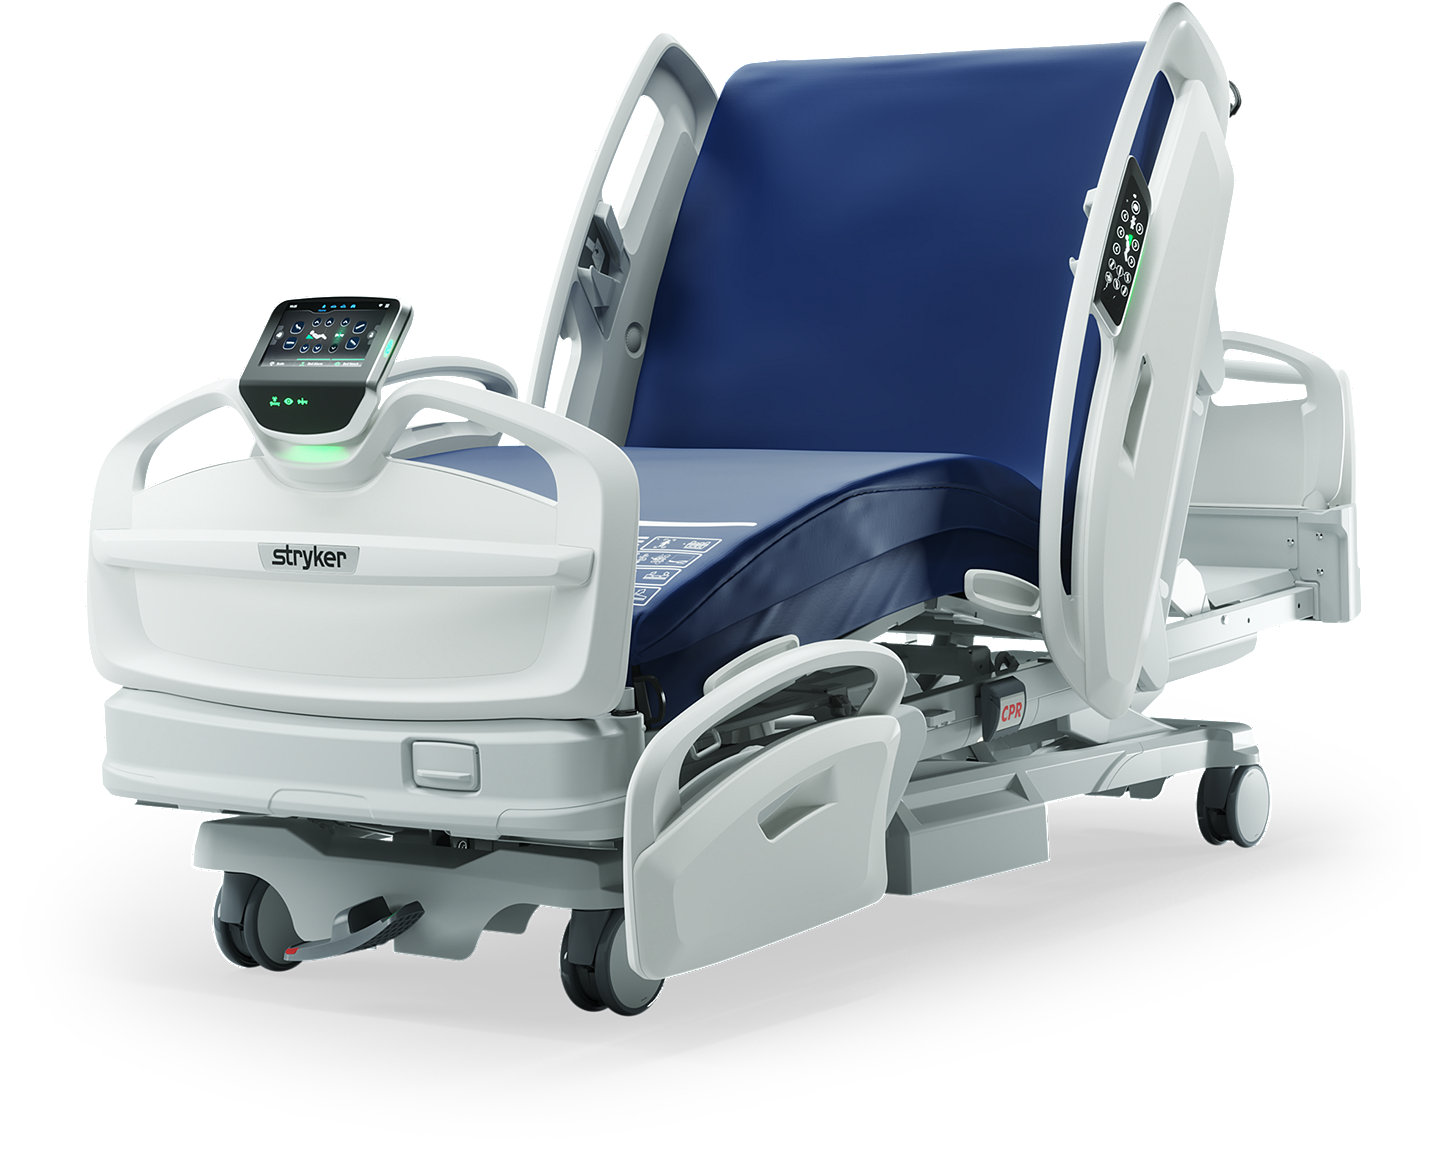 Stryker's ProCuity Bed - diagonal view